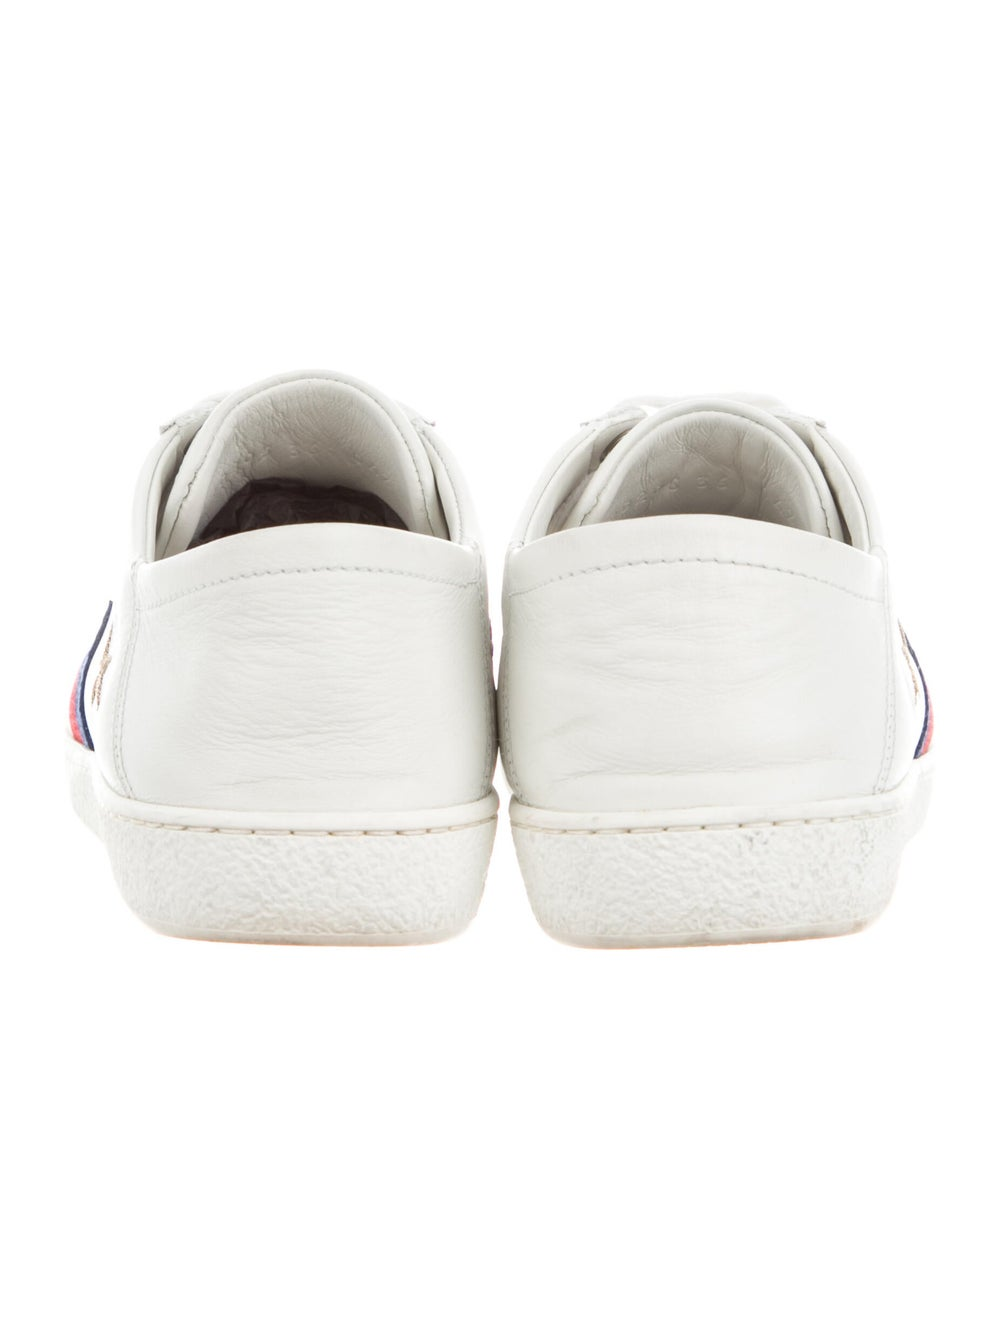 Gucci Ace Sneakers White - image 4